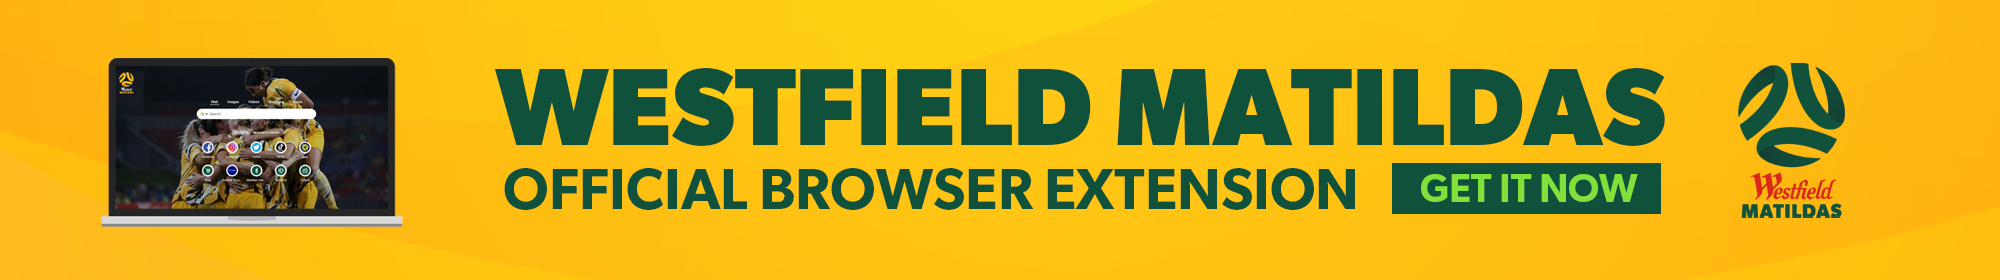 Westfield Matildas Browser Extension Thin Banner